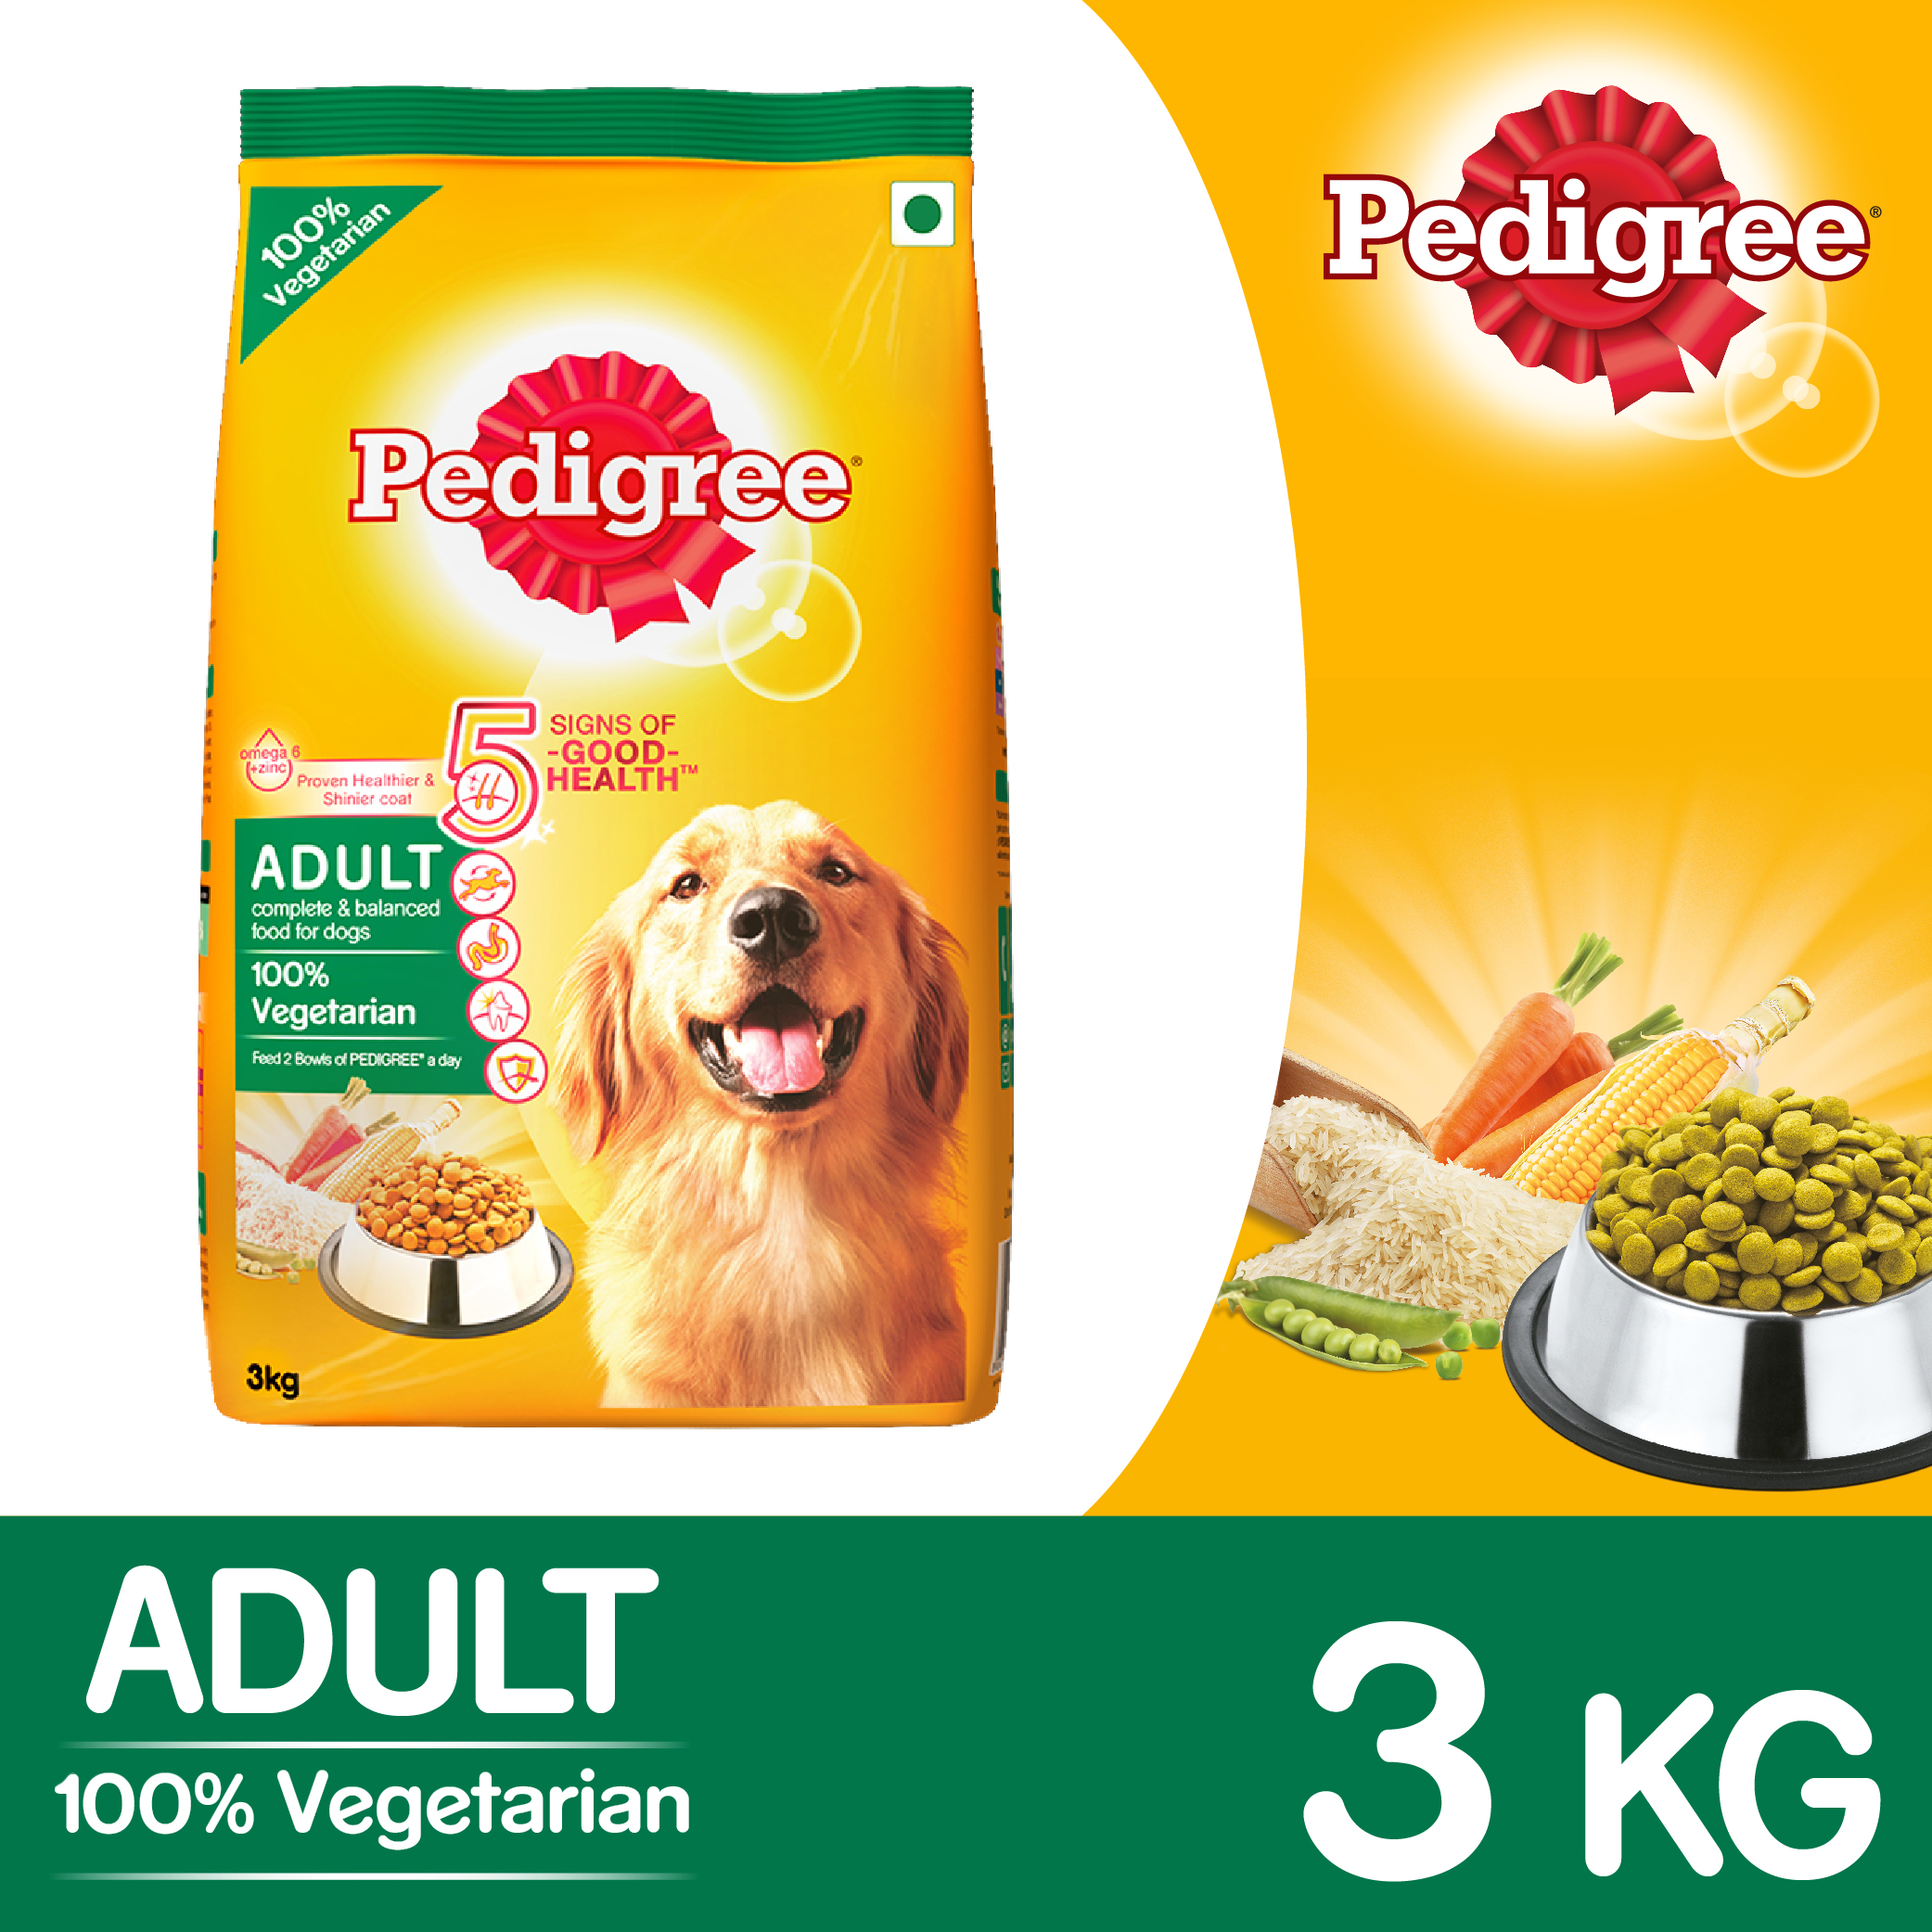 pedigree dog food adult 100 vegetarian 3 kg dogspot online pet supply store. Black Bedroom Furniture Sets. Home Design Ideas